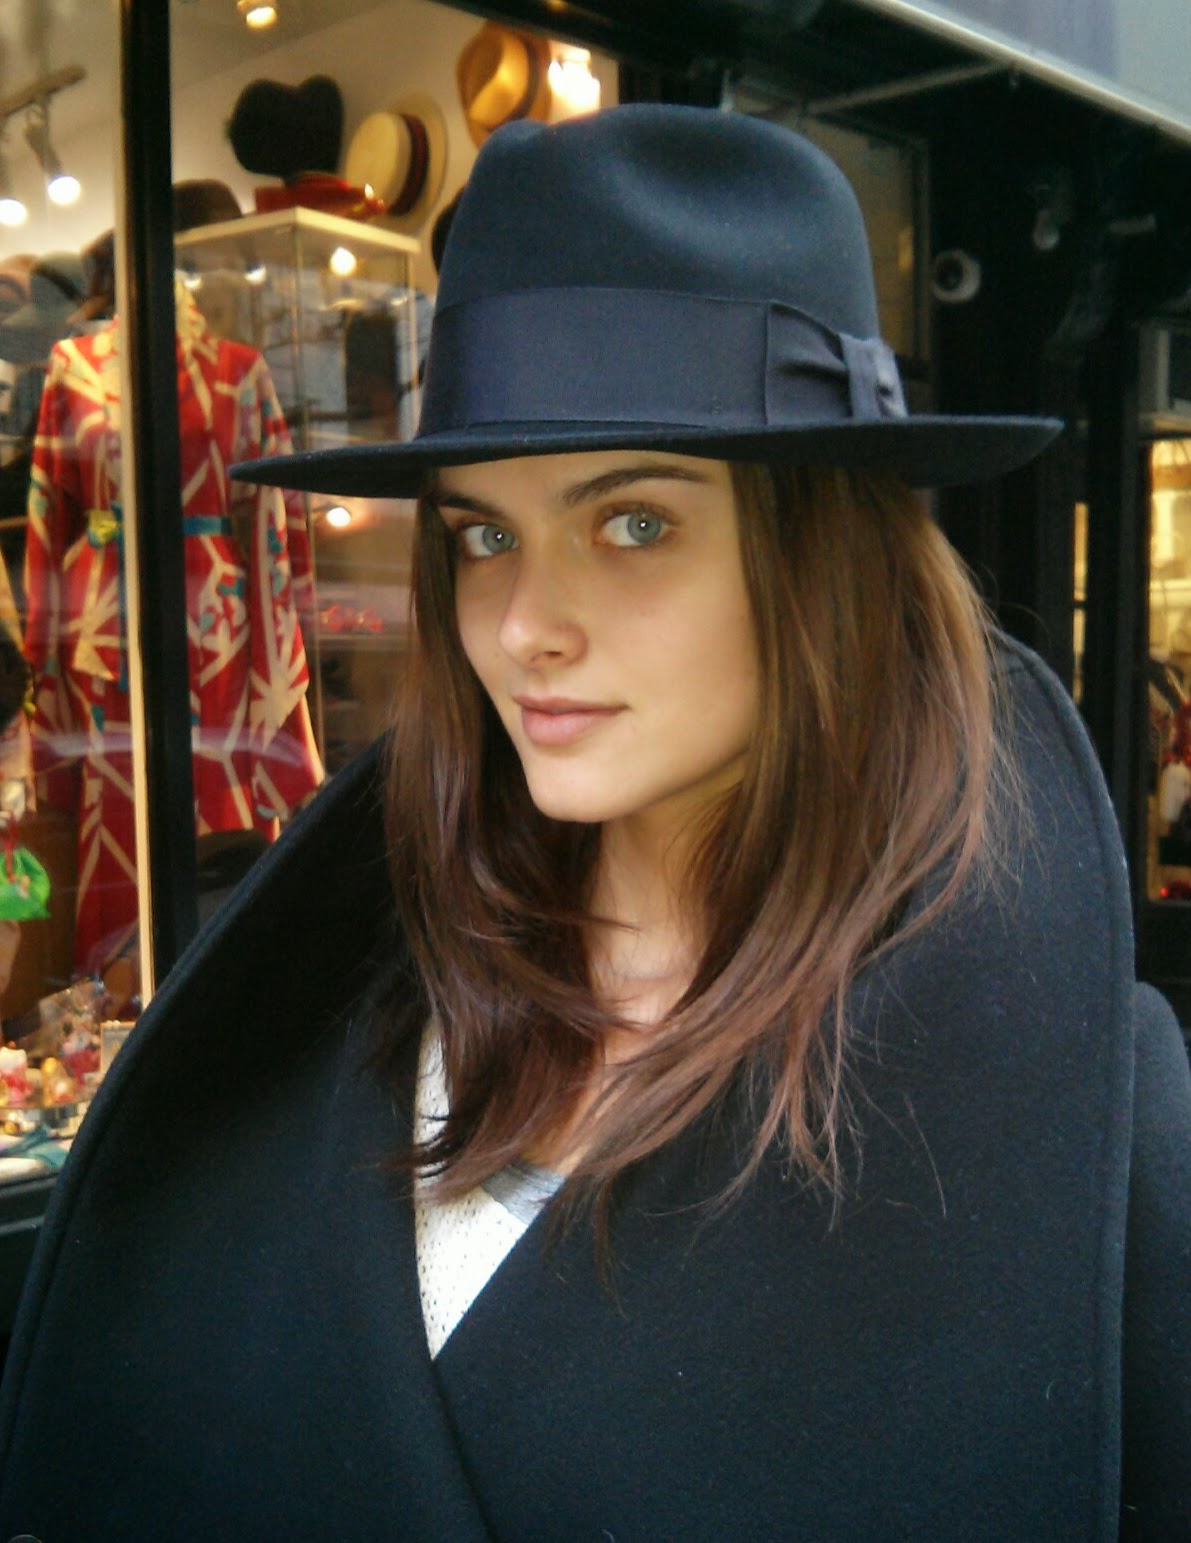 Zuzana at The Hat House NY wearing custom fedora